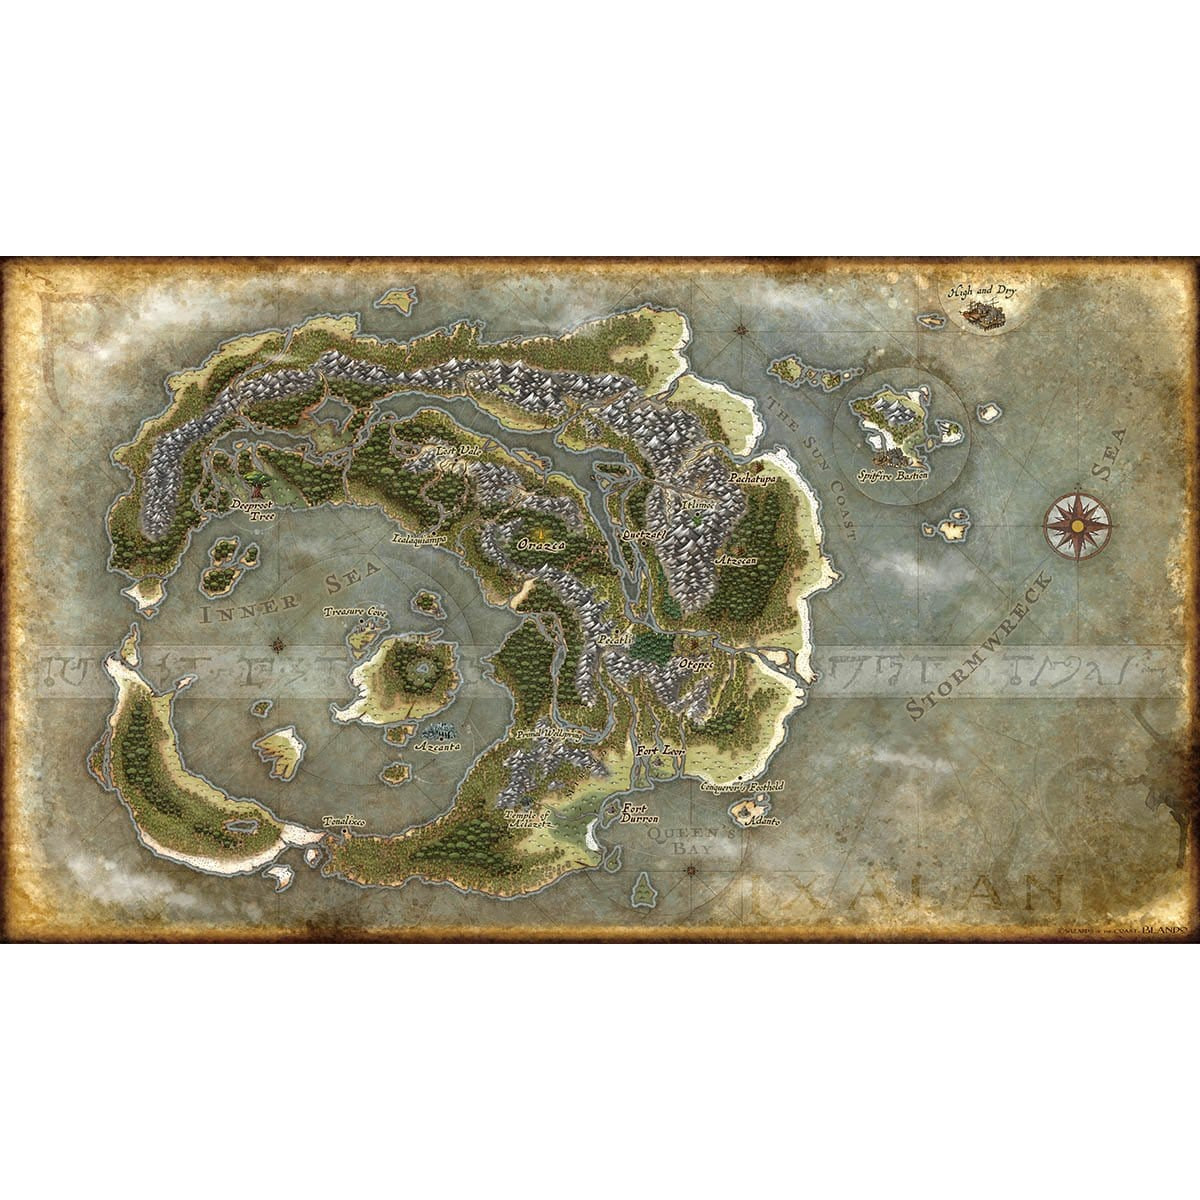 Ixalan Map Print - Print - Original Magic Art - Accessories for Magic the Gathering and other card games